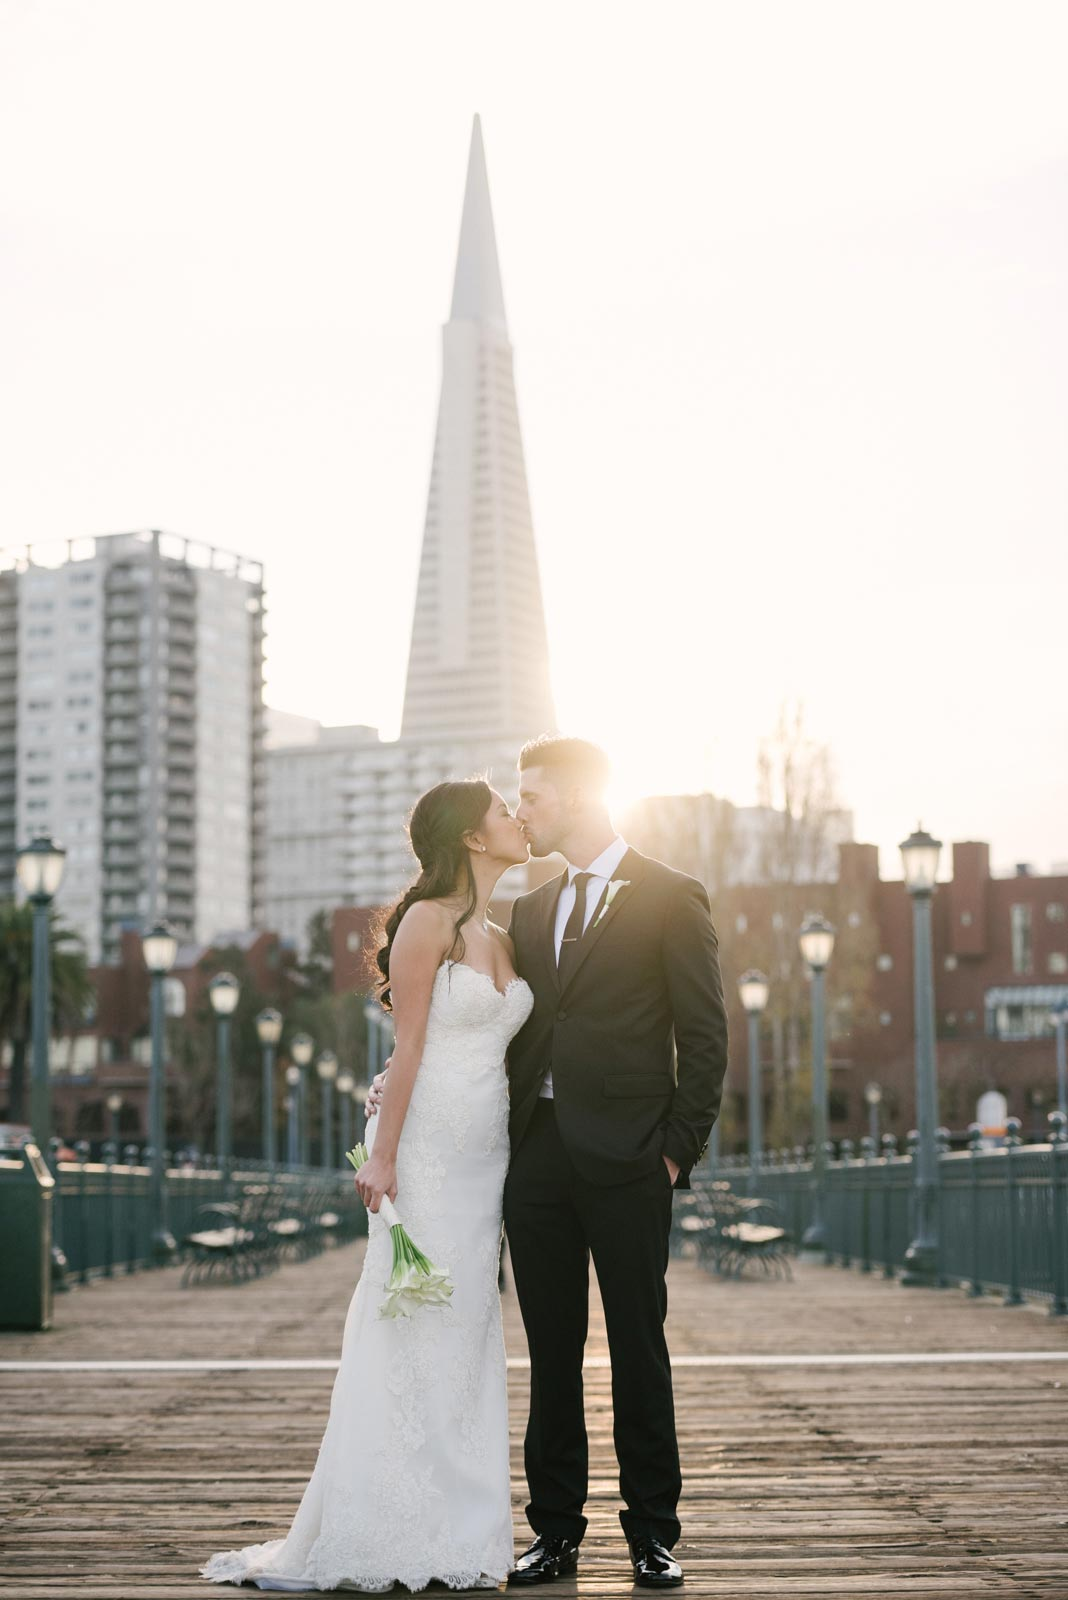 San Francisco sunset with bride and groom